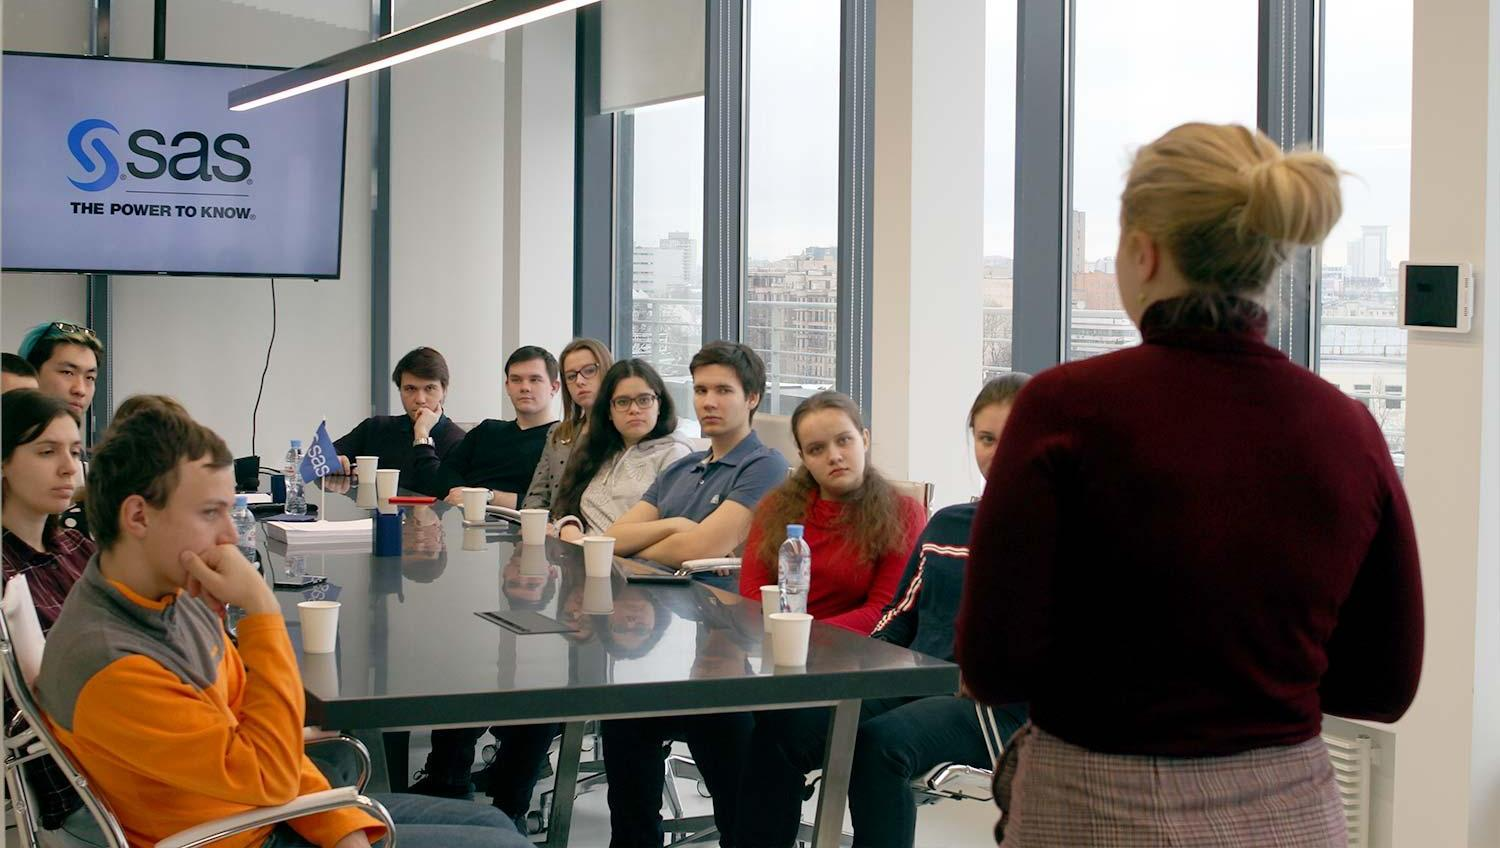 Employee tells students about SAS company